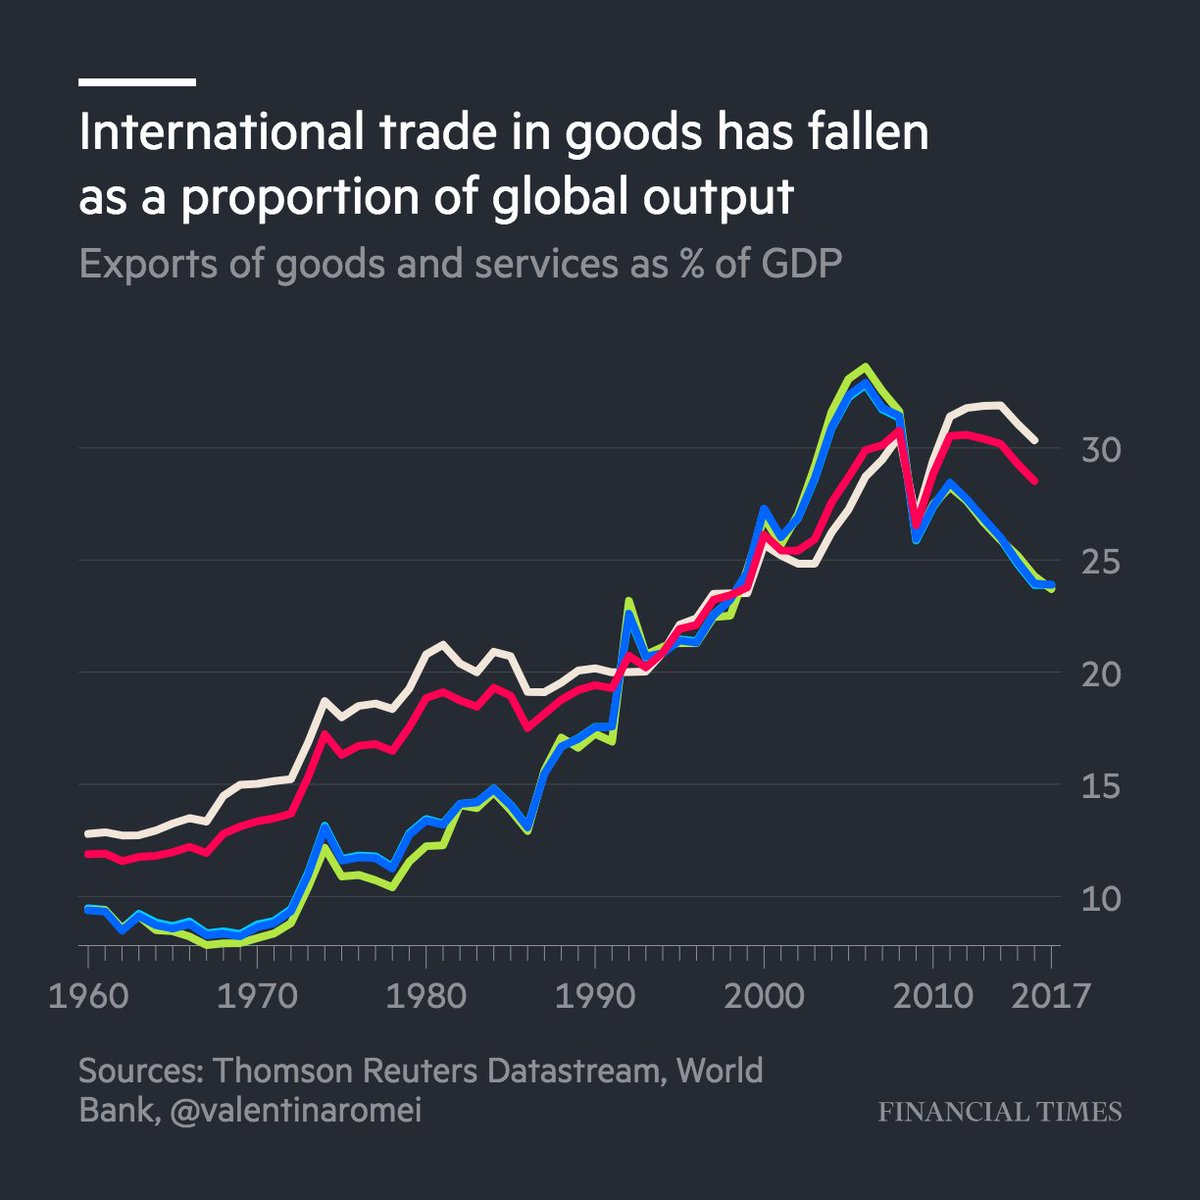 Will the US-China trade war have an impact on global growth? It's been slowing for a while already... https://t.co/nw4m14qkac